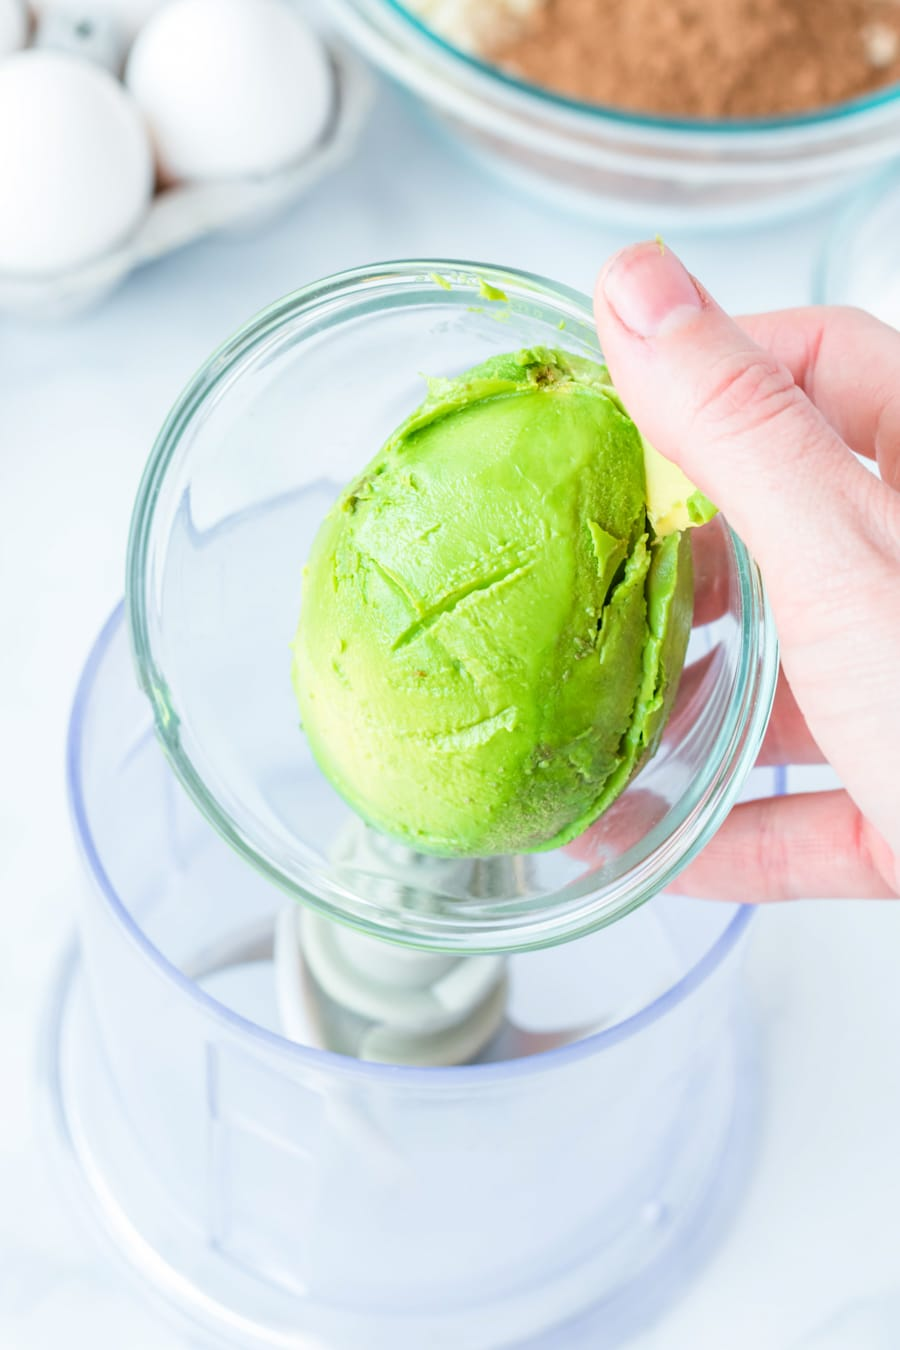 a hand holding a peeled avocado in a bowl